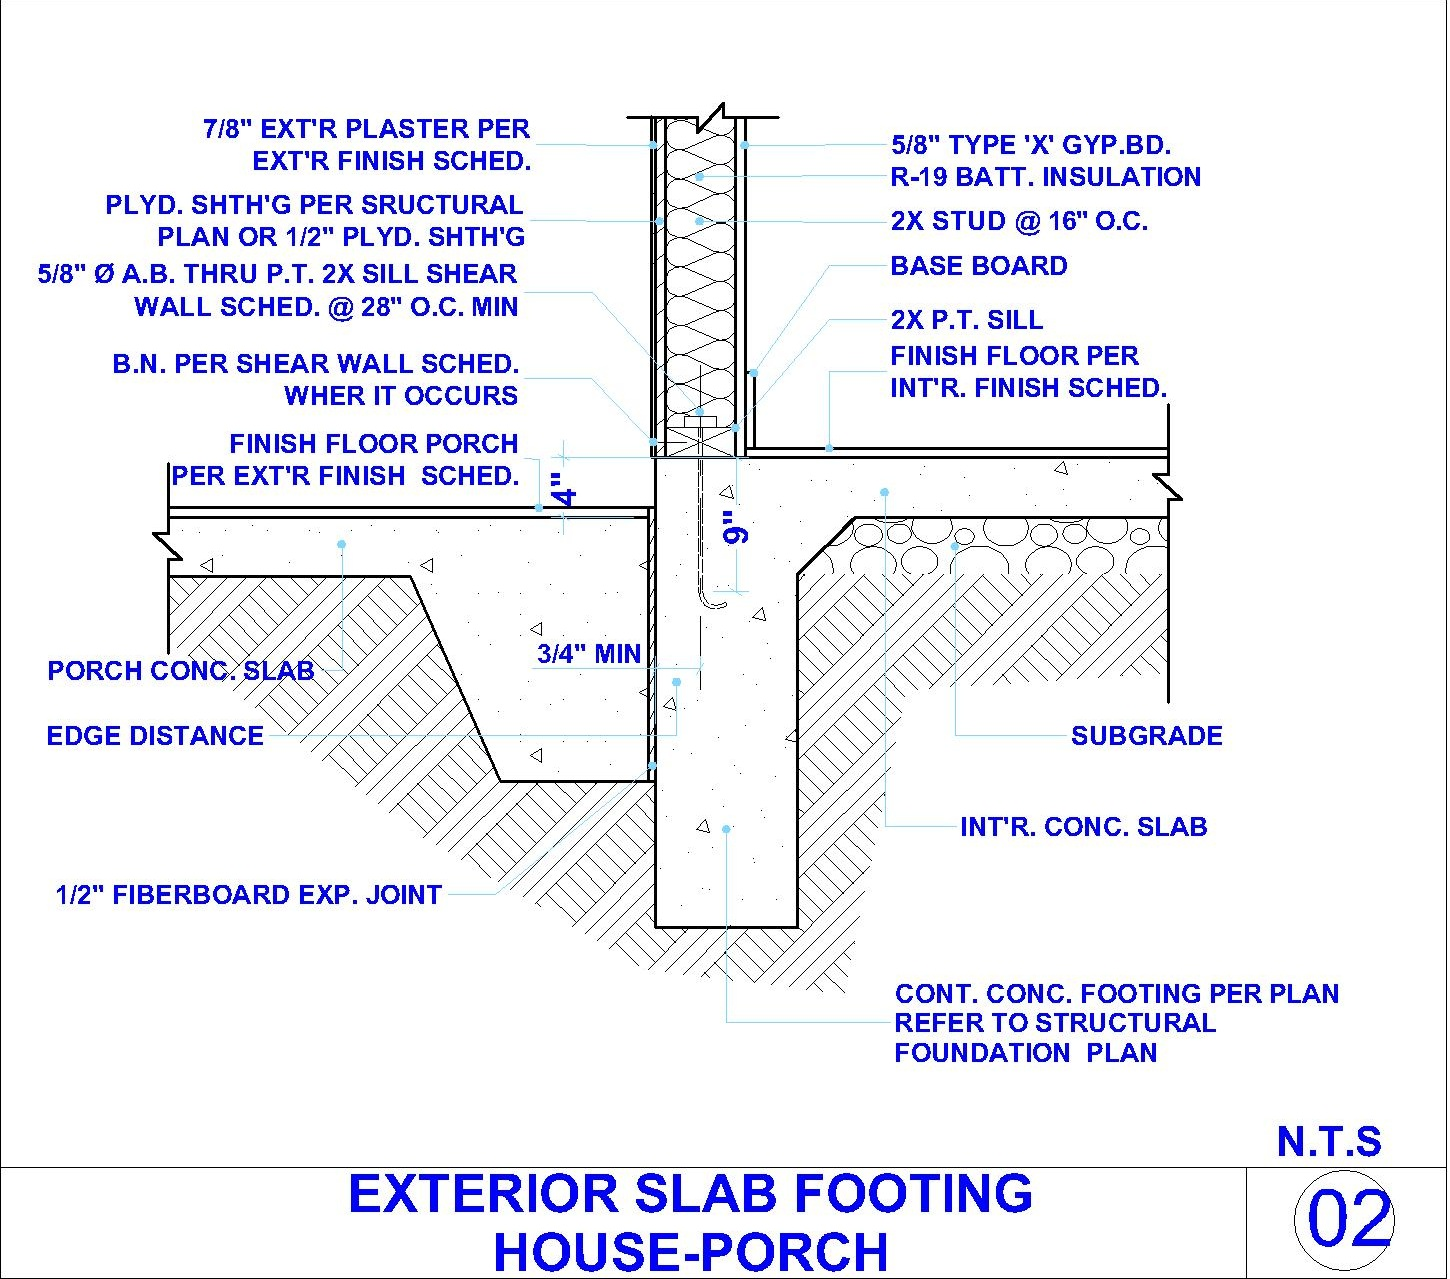 EXTERIOR CONCERT SLAB FOOTING AND EXTERIOR WALL DETAIL AT